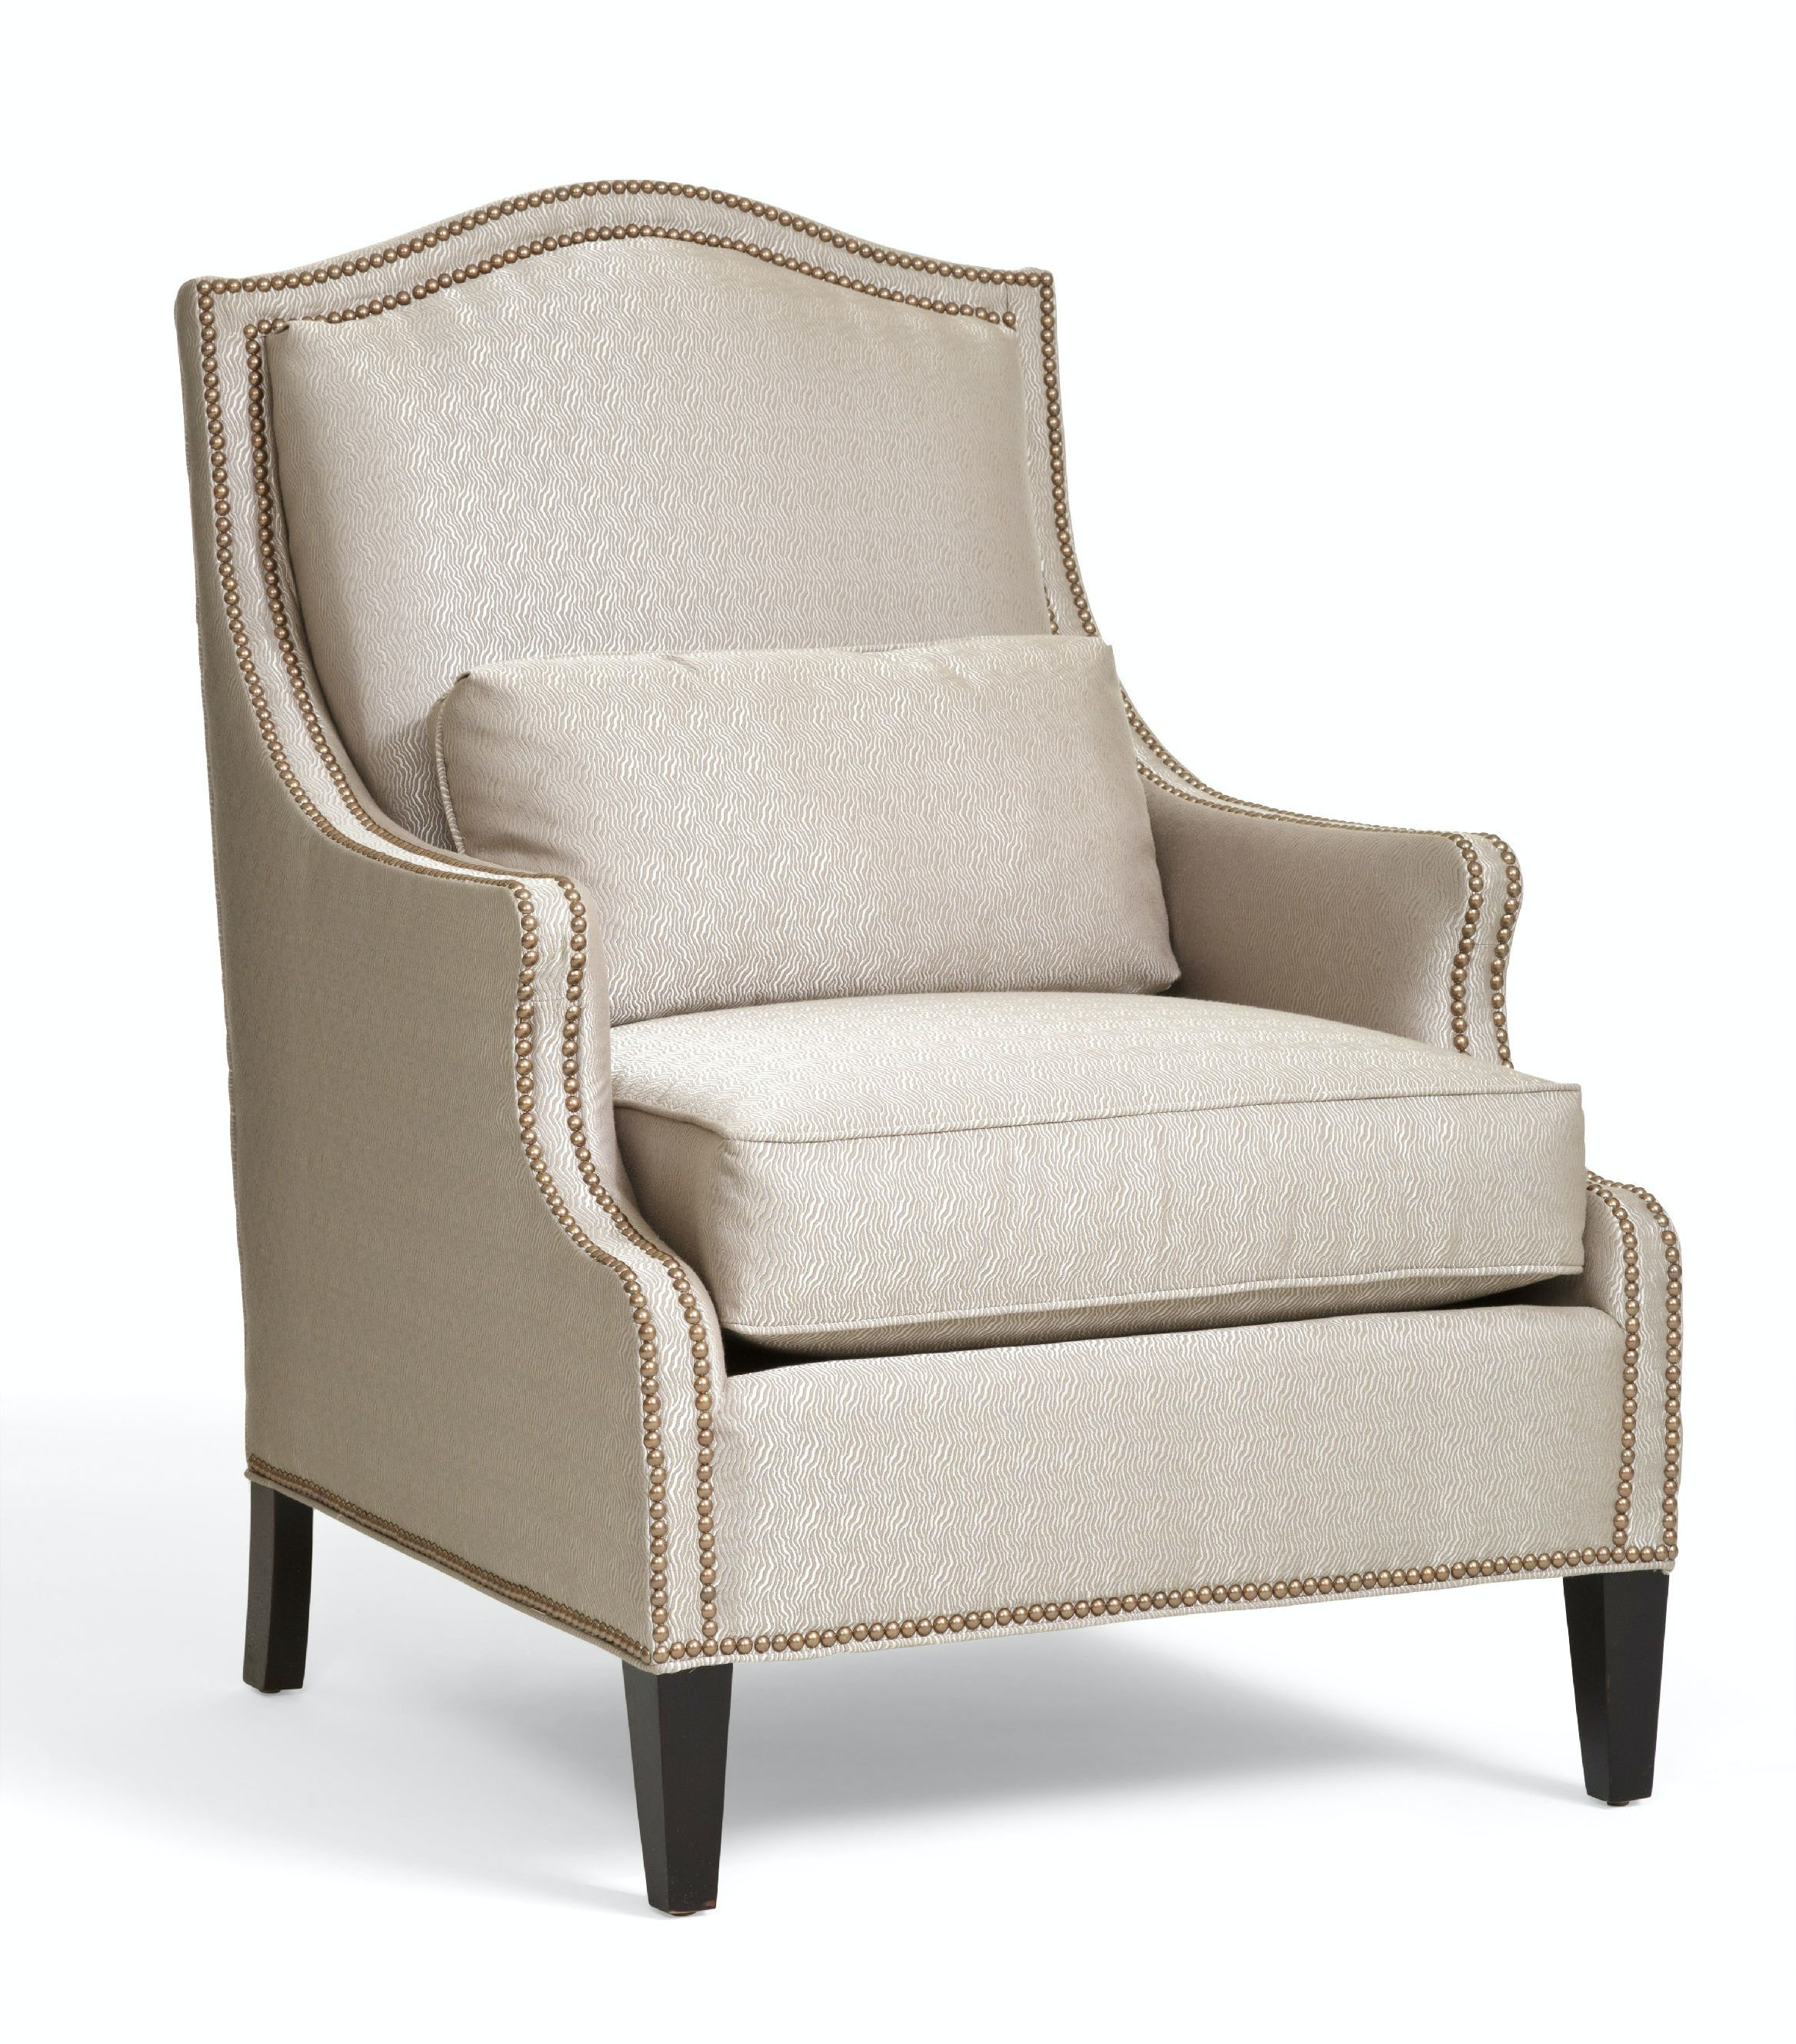 accent chairs with arms custom outdoor chair cushions covers arm and a half club lounge hollywood glam